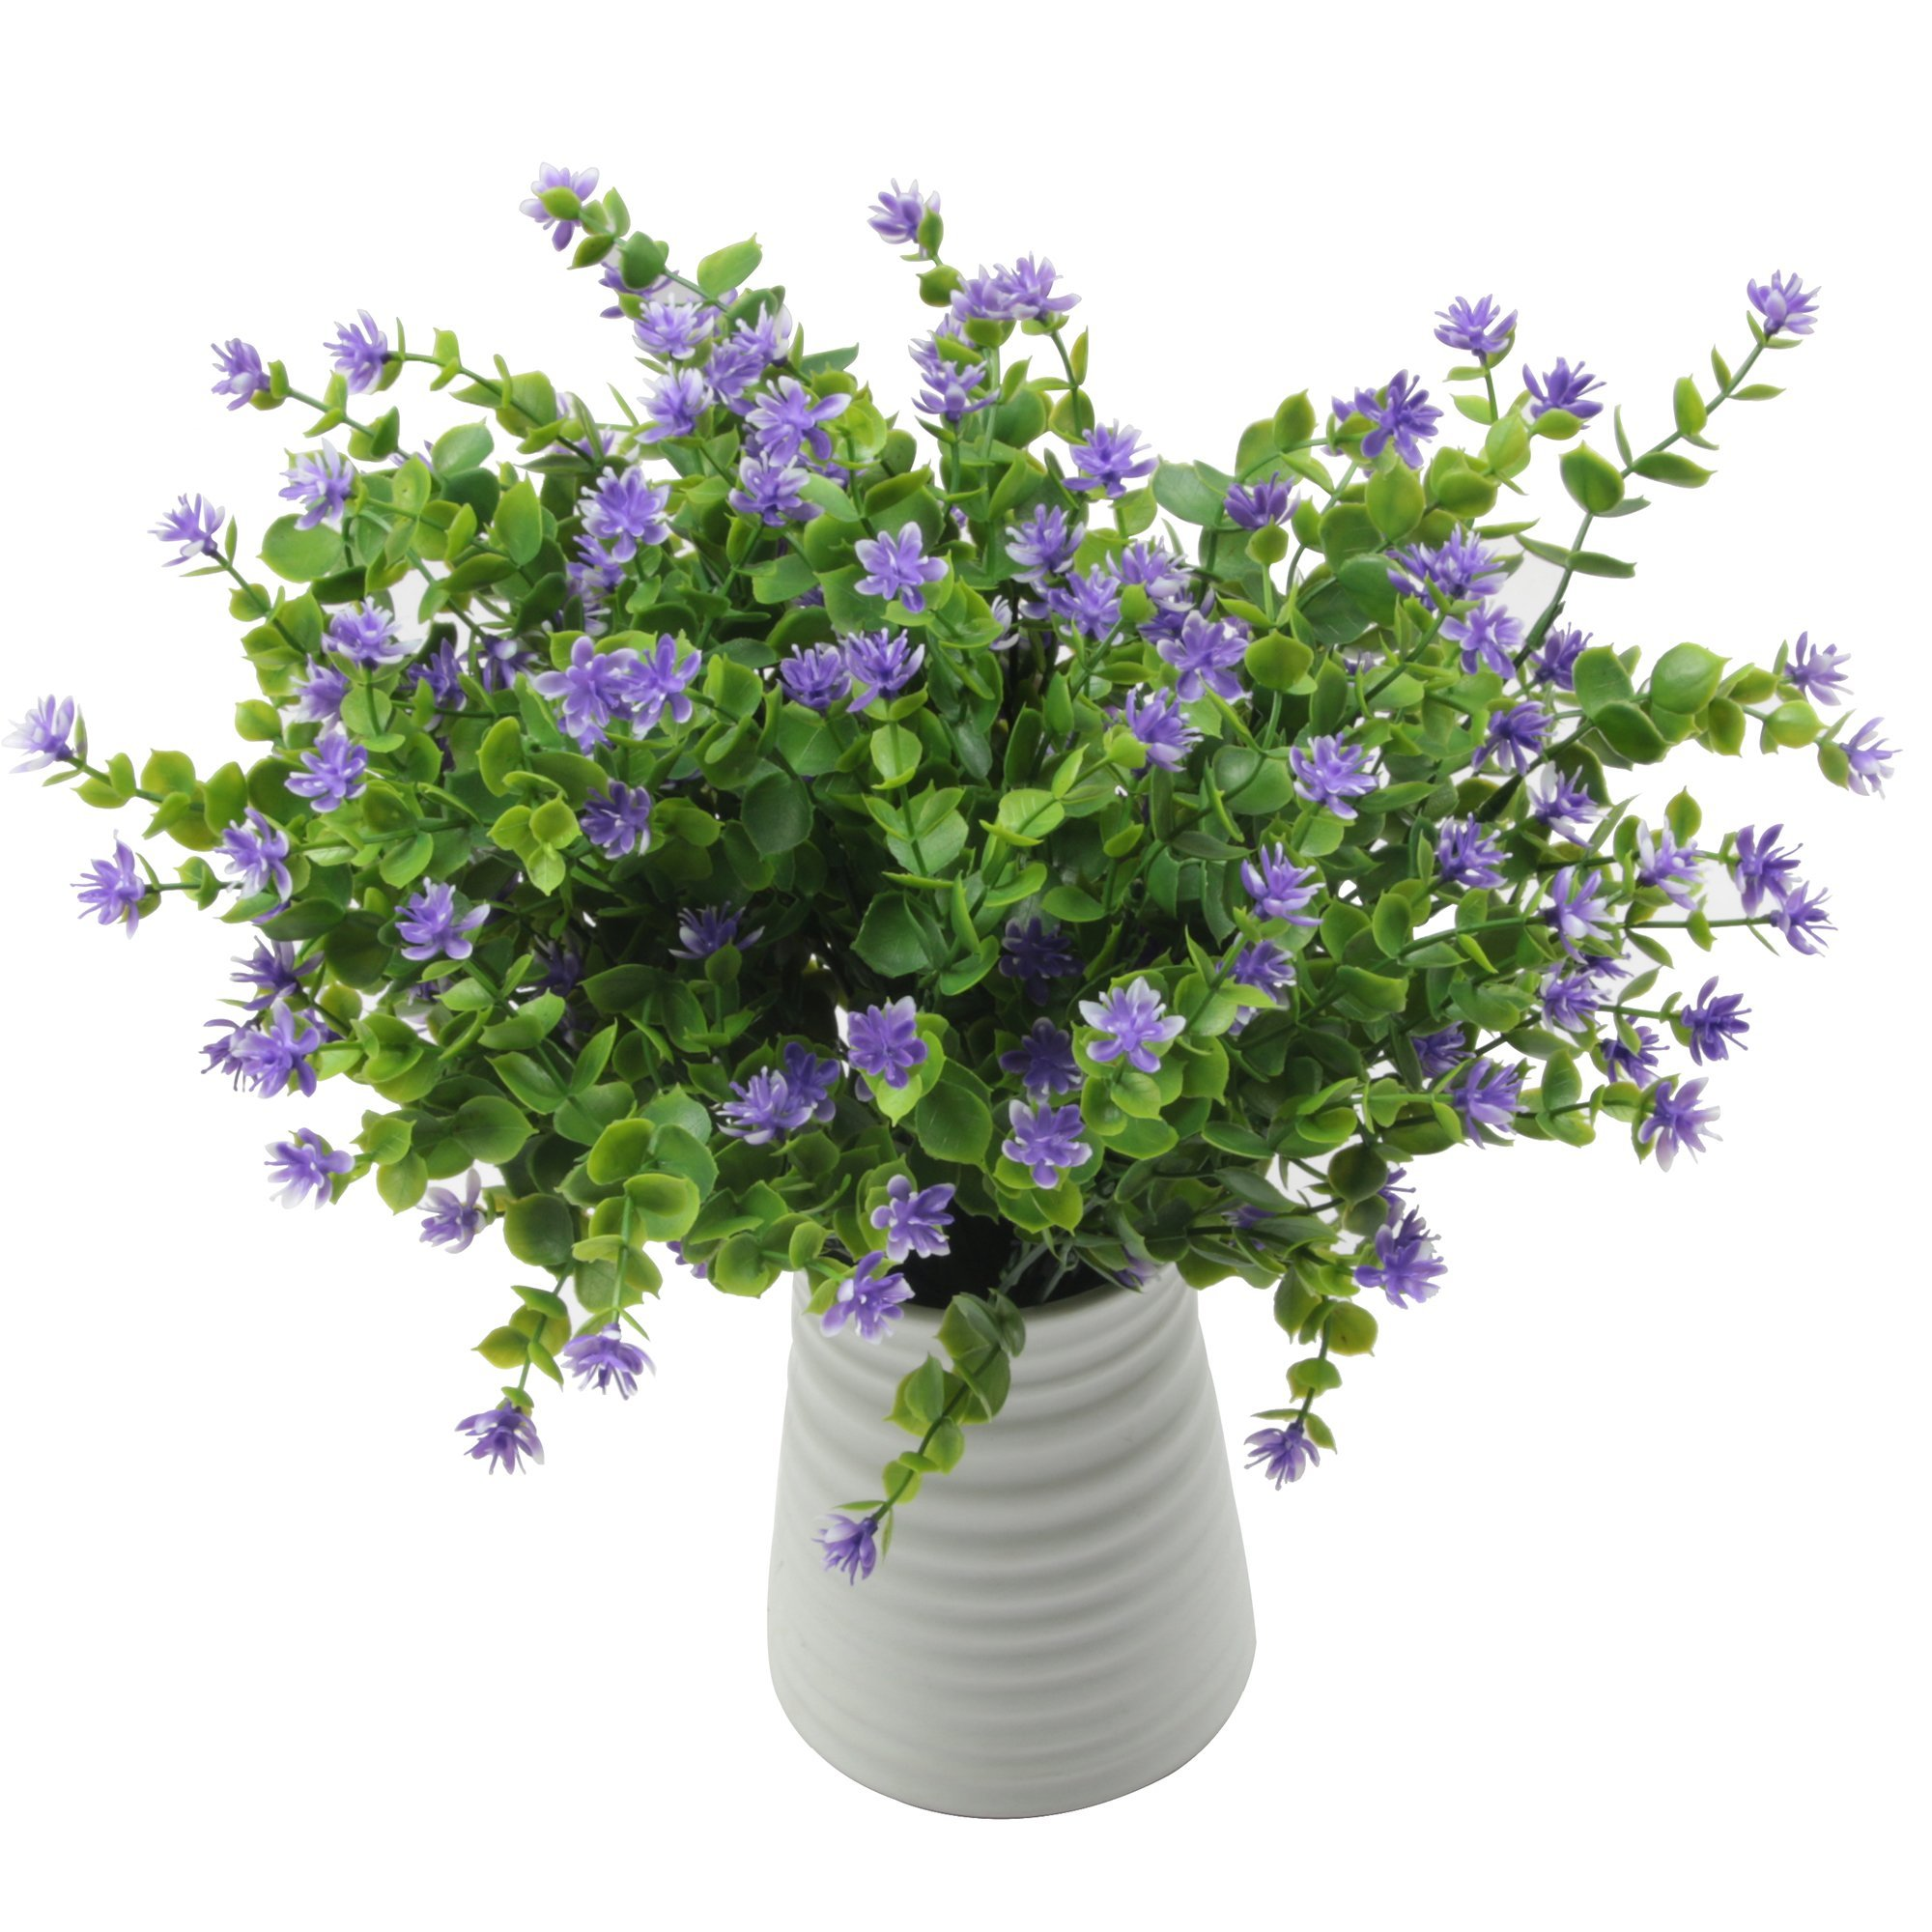 Furnily 5 Pack Artifcial Flower Greenery Shrubs Plants Fake Flower Greenery for Window Box Home Deocration Plastic Plants Outdoor (Purple)